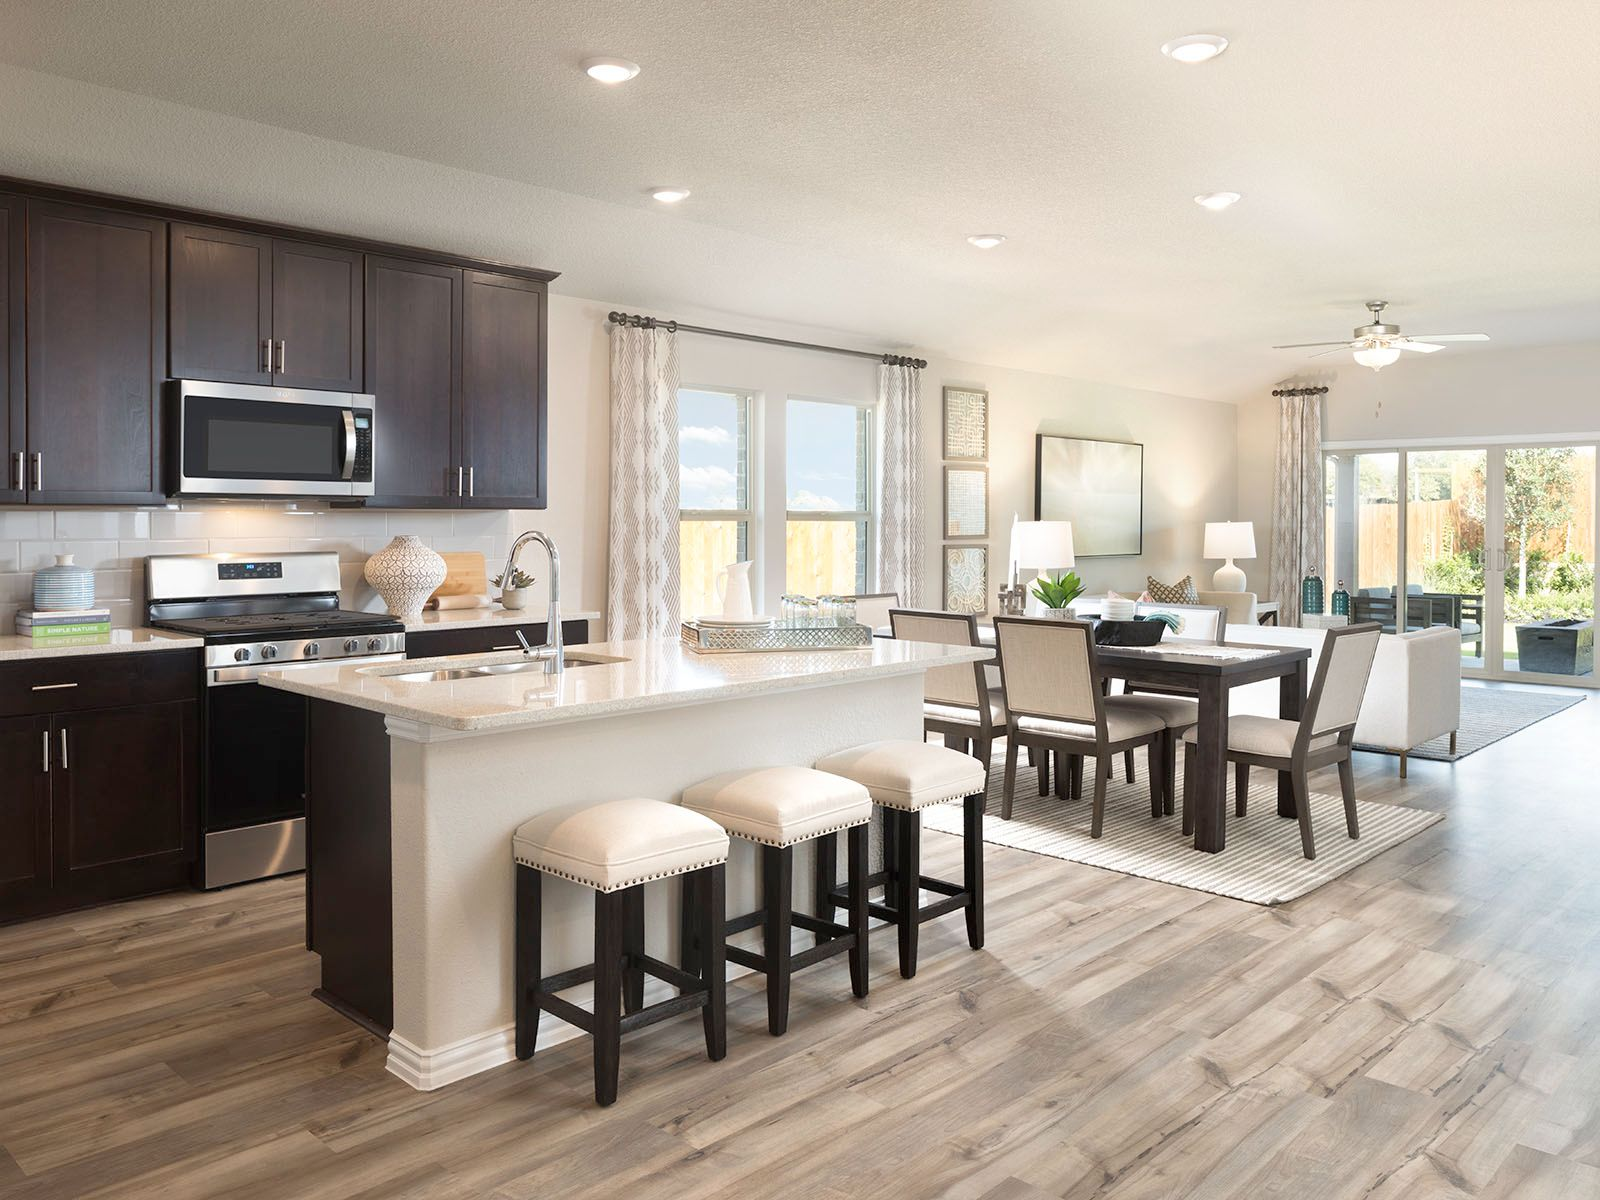 Kitchen featured in The Oleander By Meritage Homes in Dallas, TX